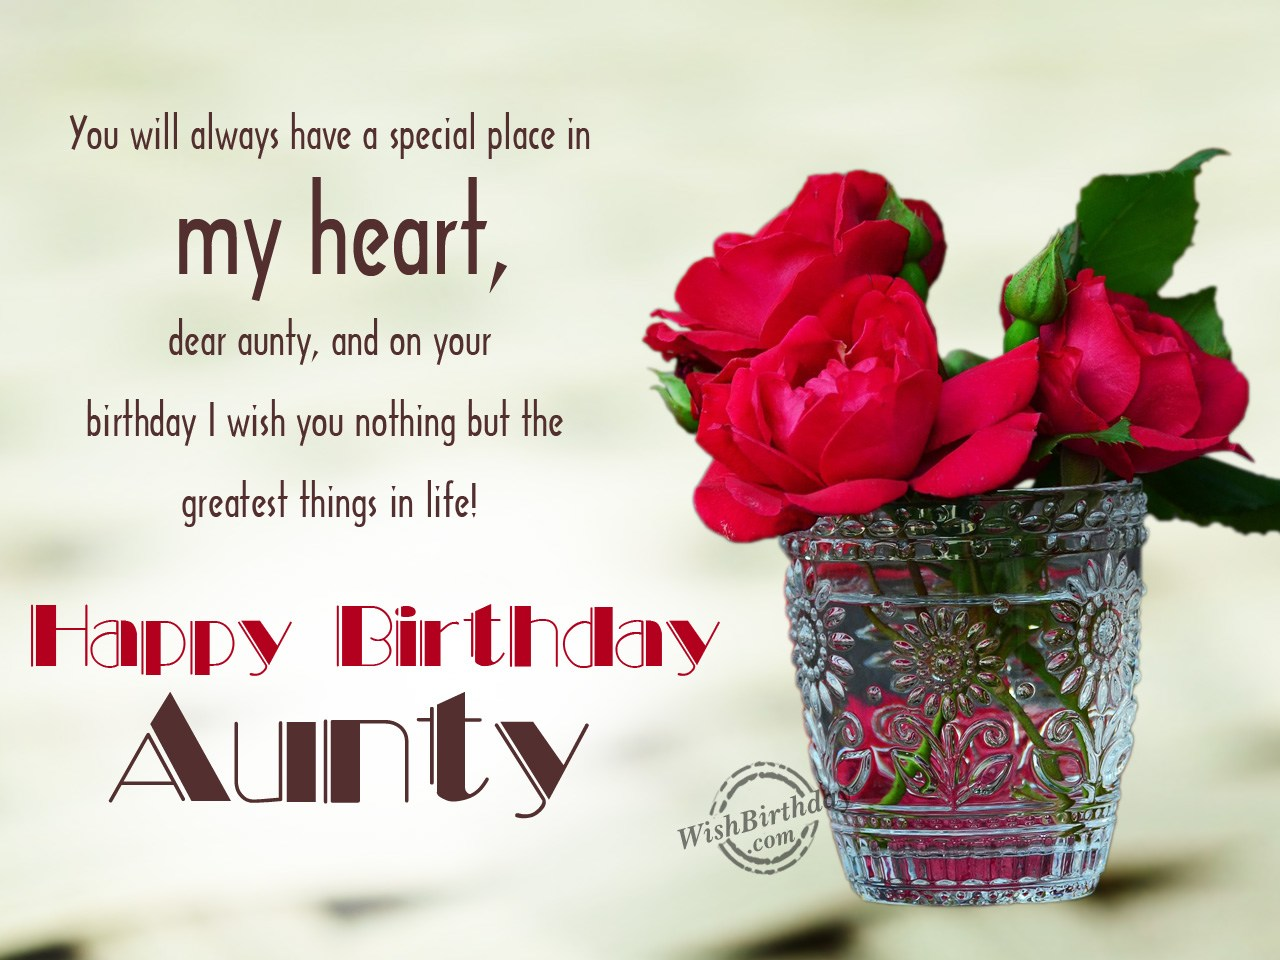 birthday message to aunt in law ; You-will-always-have-a-special-place-in-my-heart